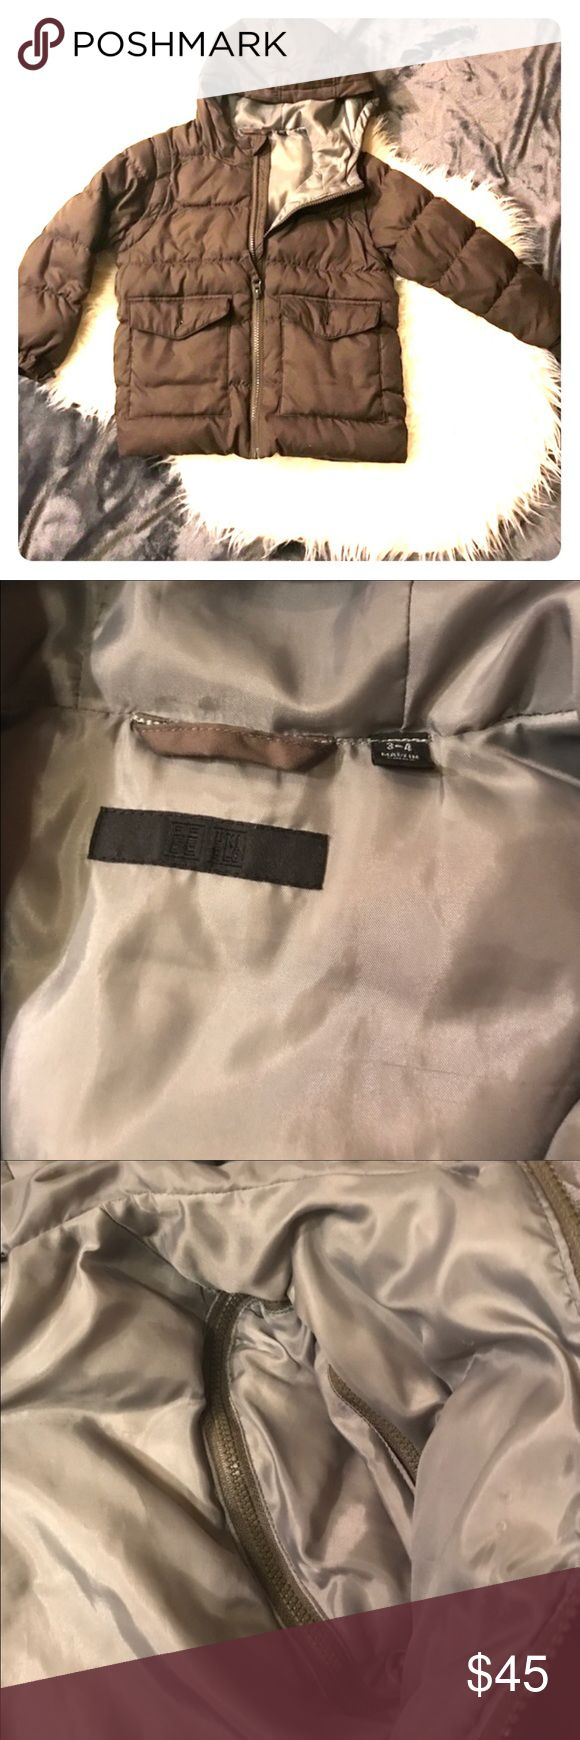 Uniqlo down jacket / vest Great condition. Jacket that can be turned into a vest. There is zippers to unzip the sleeves. Color olive green. Size 3-4 has an attached hood. Filling real feather. Very warm❌no PayPal  ❌no trade  ❌no holds ❌🚬 smoke free ❌🐶🐱 pet free Uniqlo Jackets & Coats Puffers